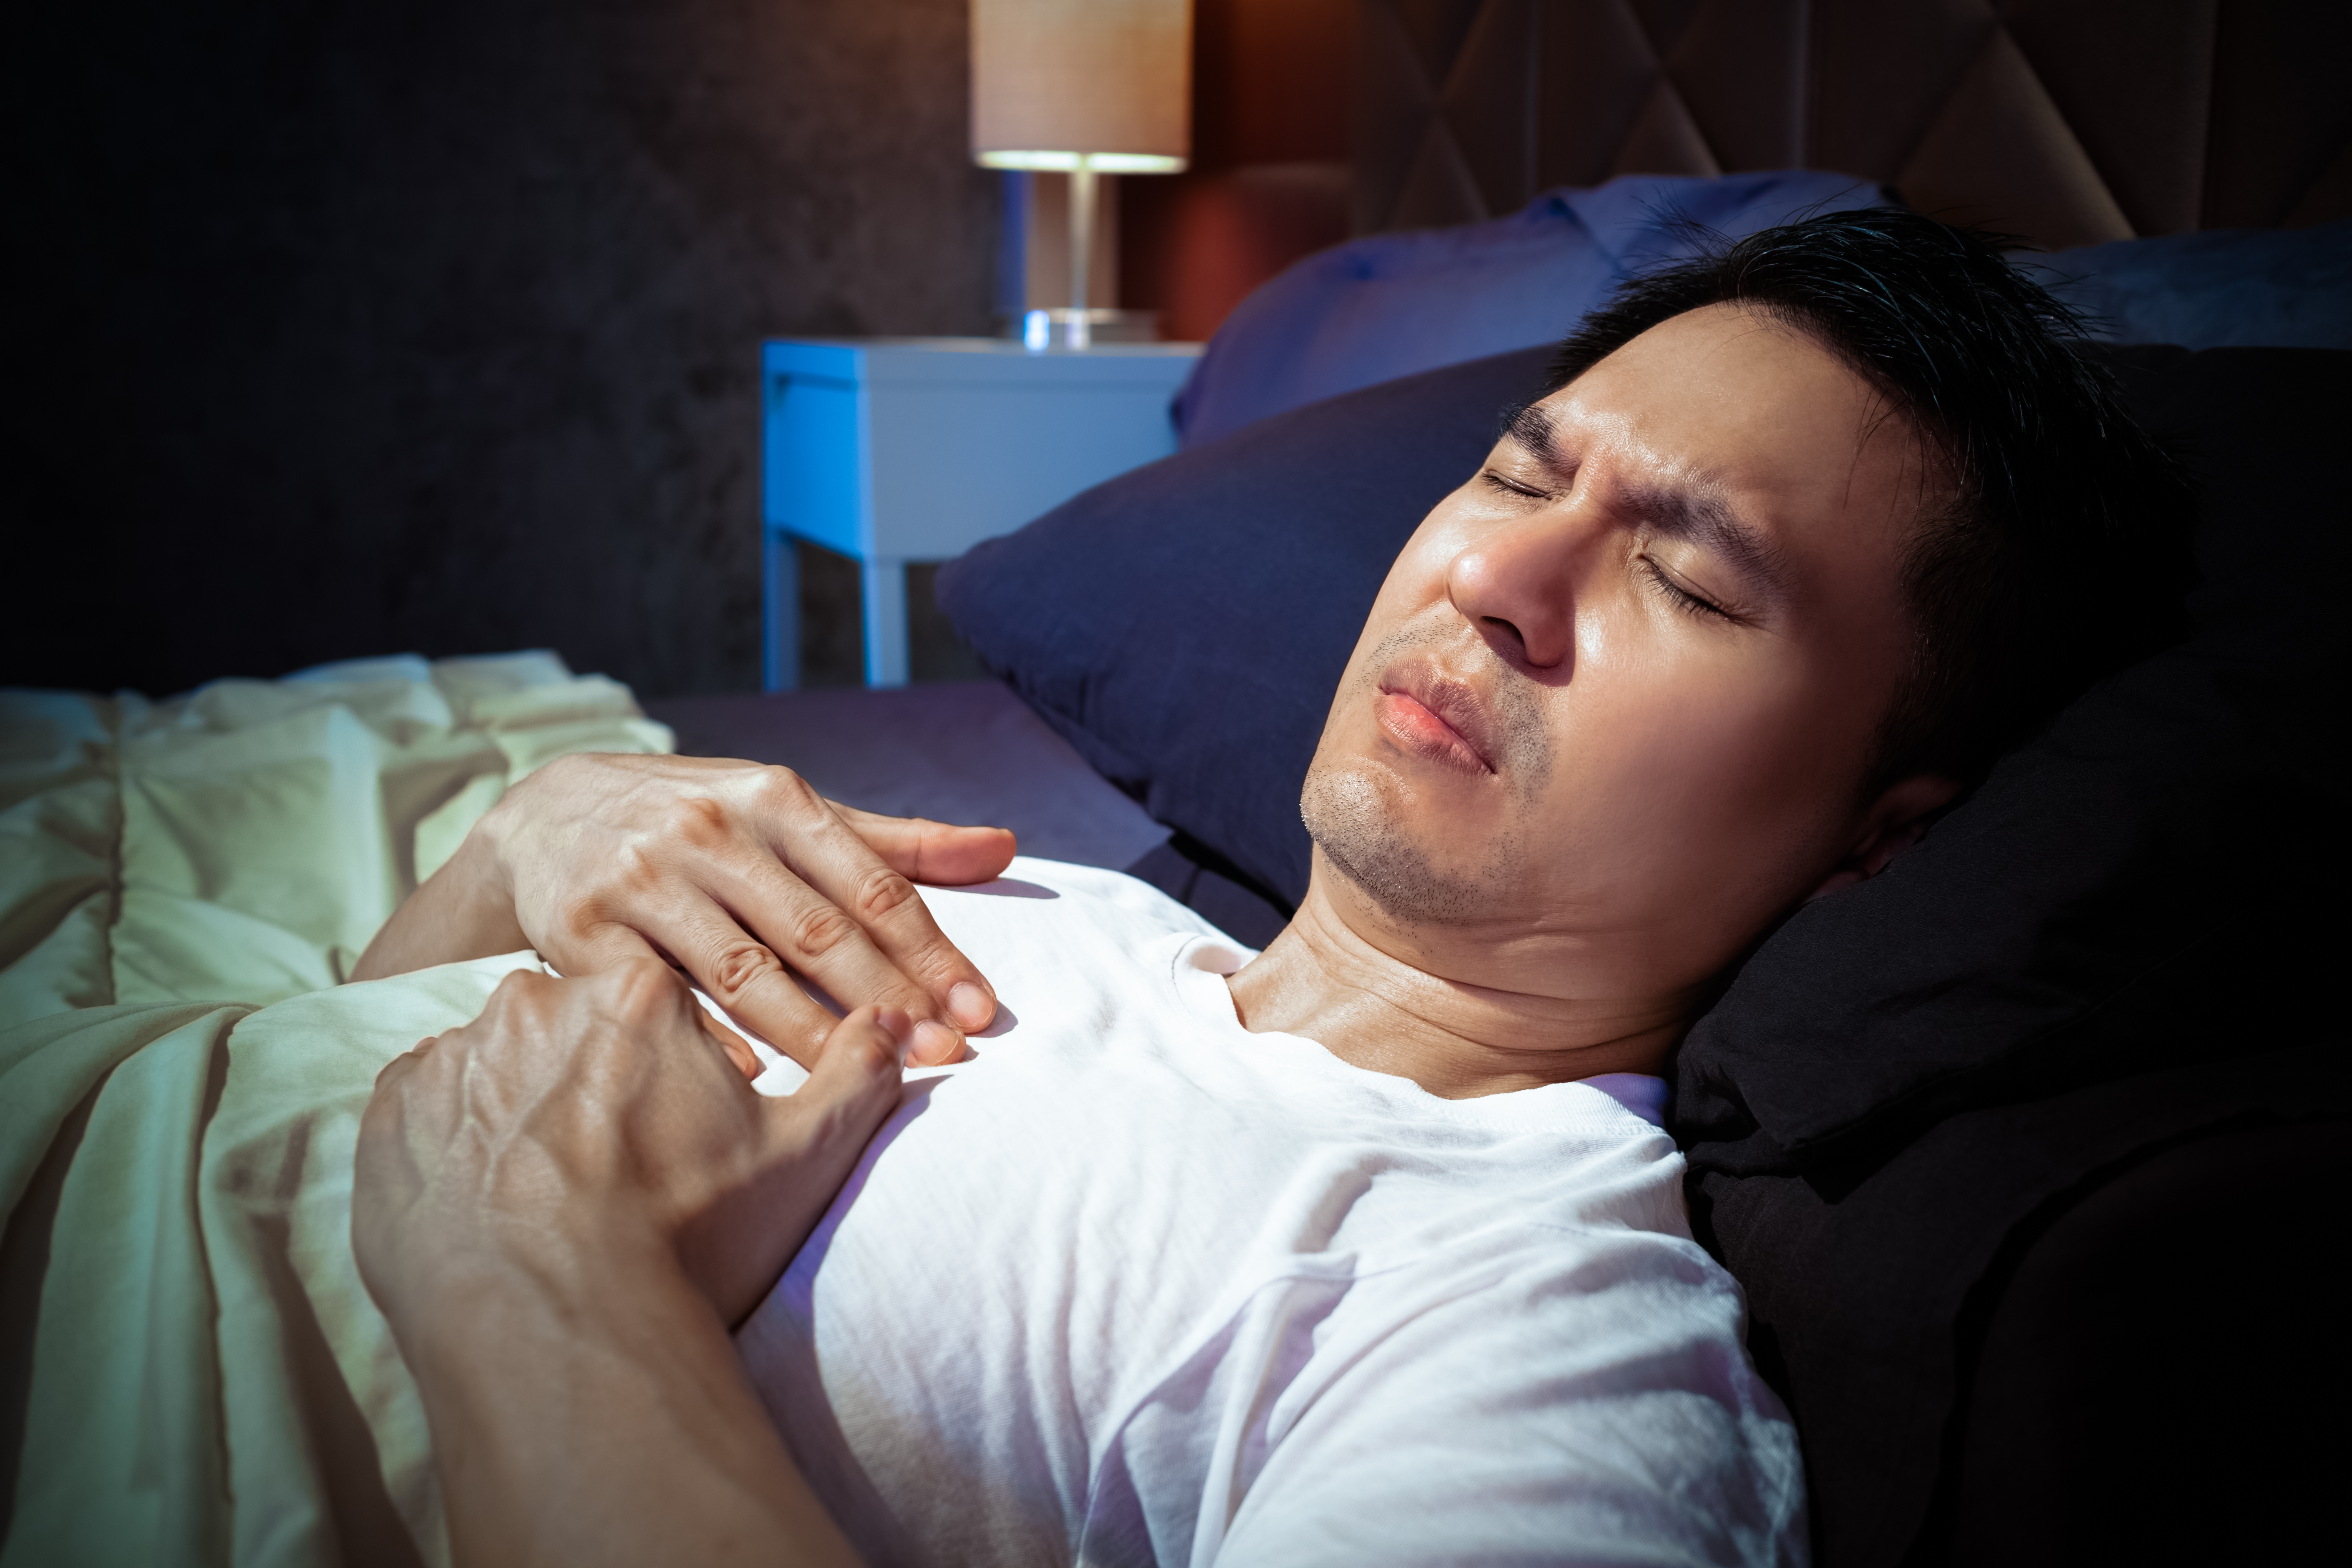 Causes of Fluttering Heartbeat After Lying Down